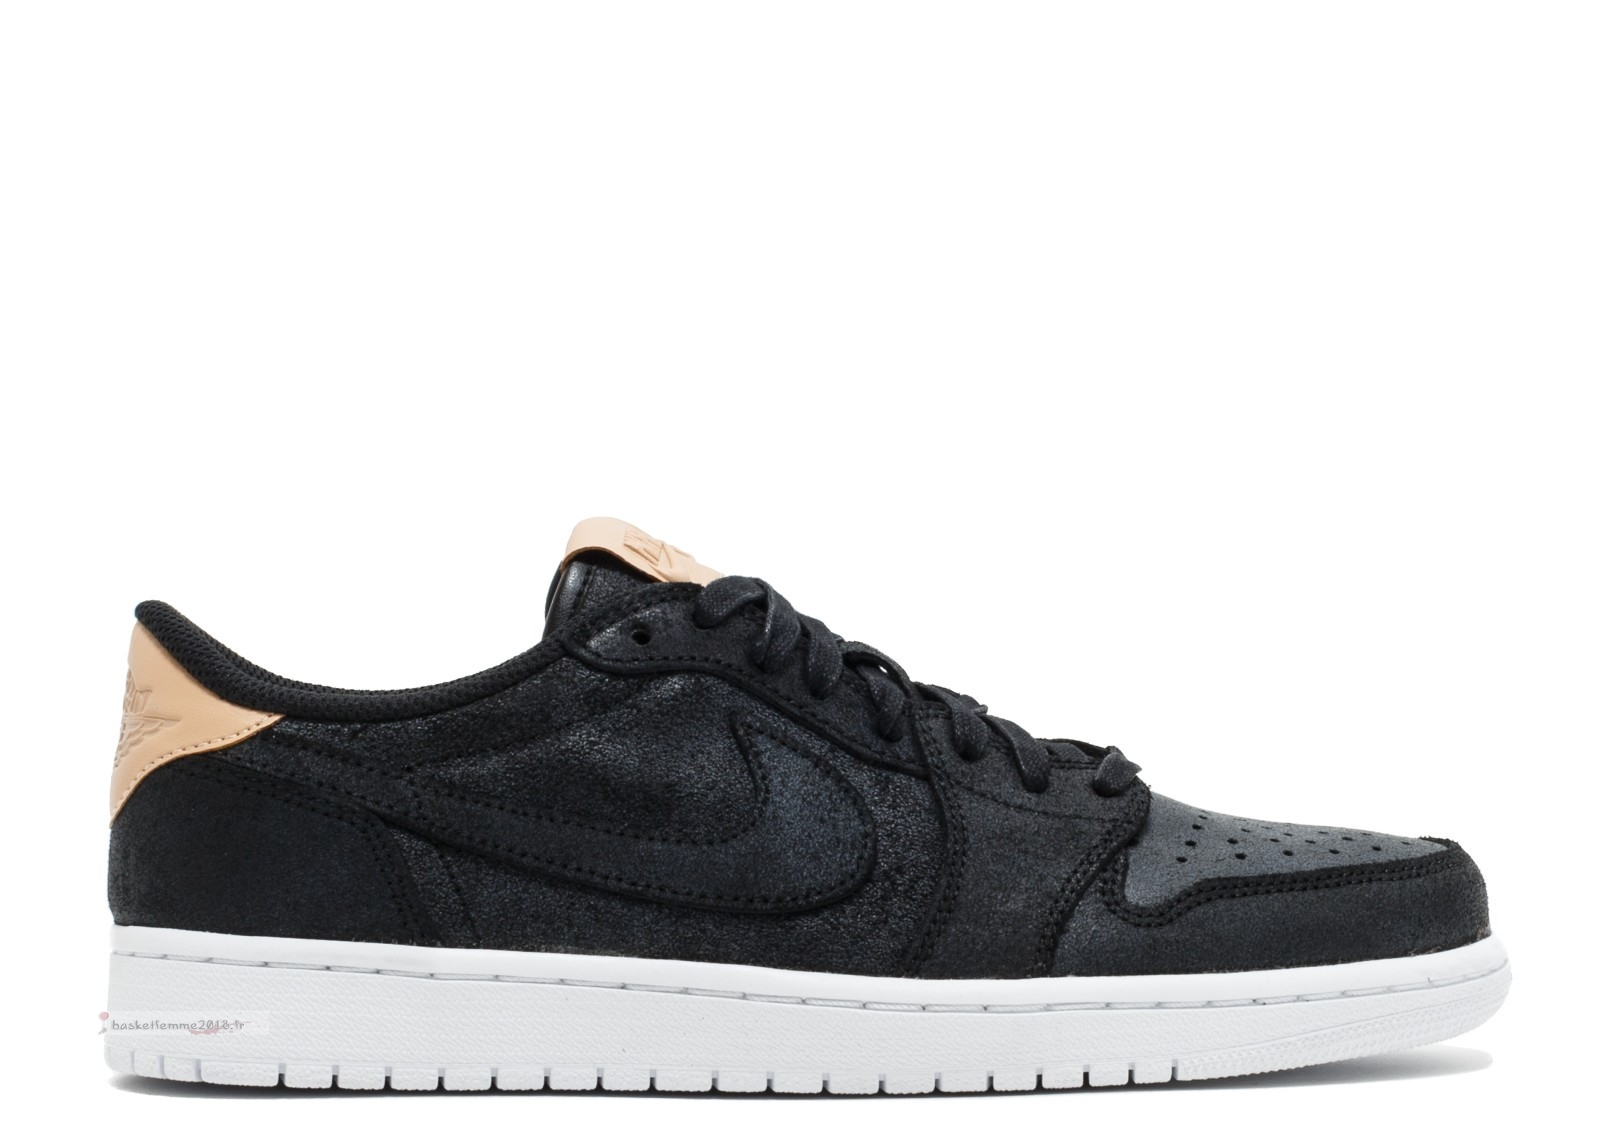 Air Jordan 1 Retro Low Og Prem Noir (905136-010) Chaussure de Basket